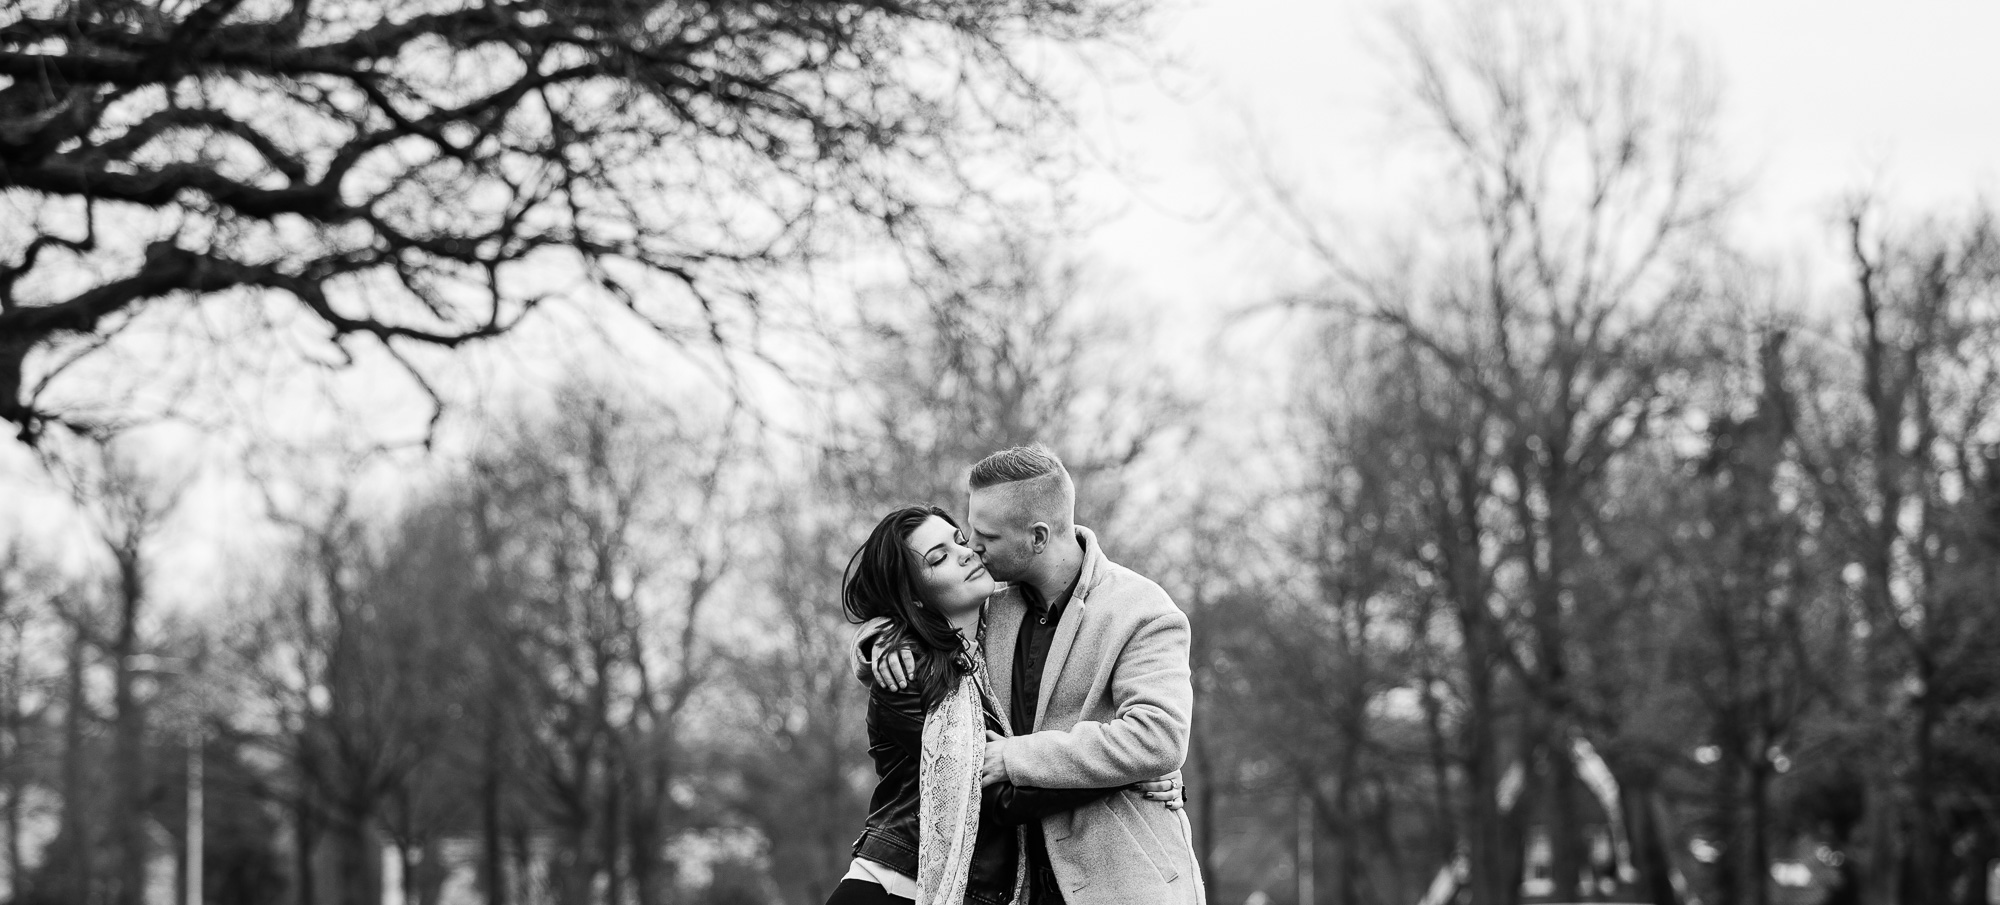 LOVE STORY FOTOSESSIE - Totally in love!